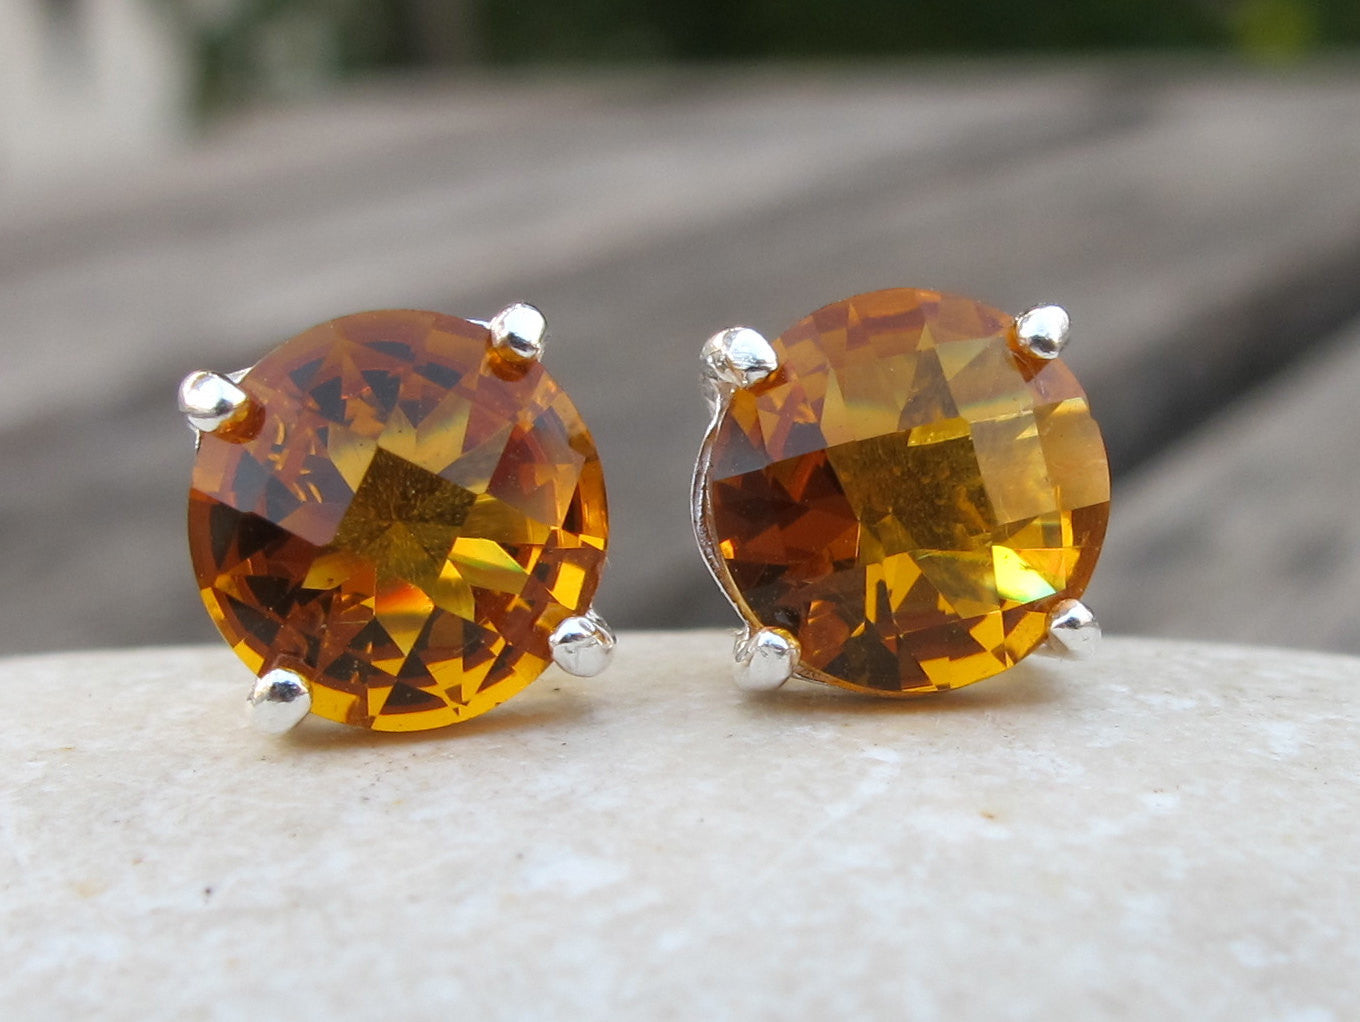 Stone Earrings-Stone Studs-Post Earrings-Quartz Earrings- Citrine Earrings- Citrine Stud Earrings-November Birthstone Stud Earrings- Studs